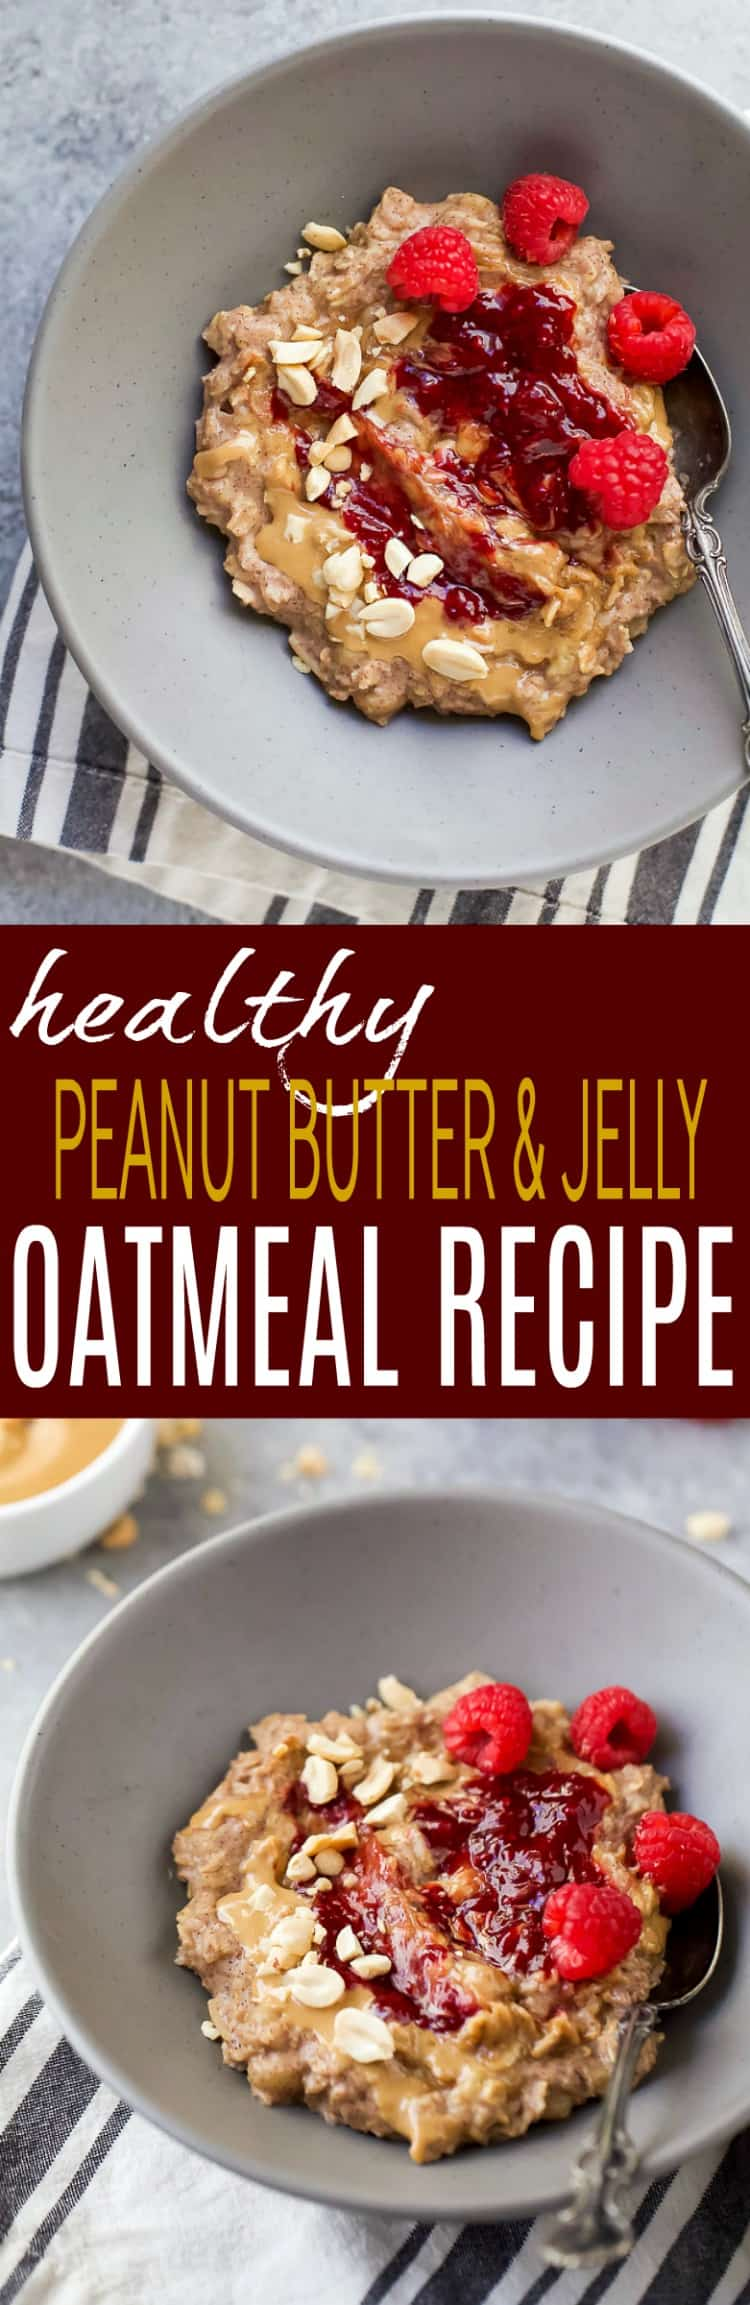 Recipe collage for Healthy Peanut Butter & Jelly Oatmeal